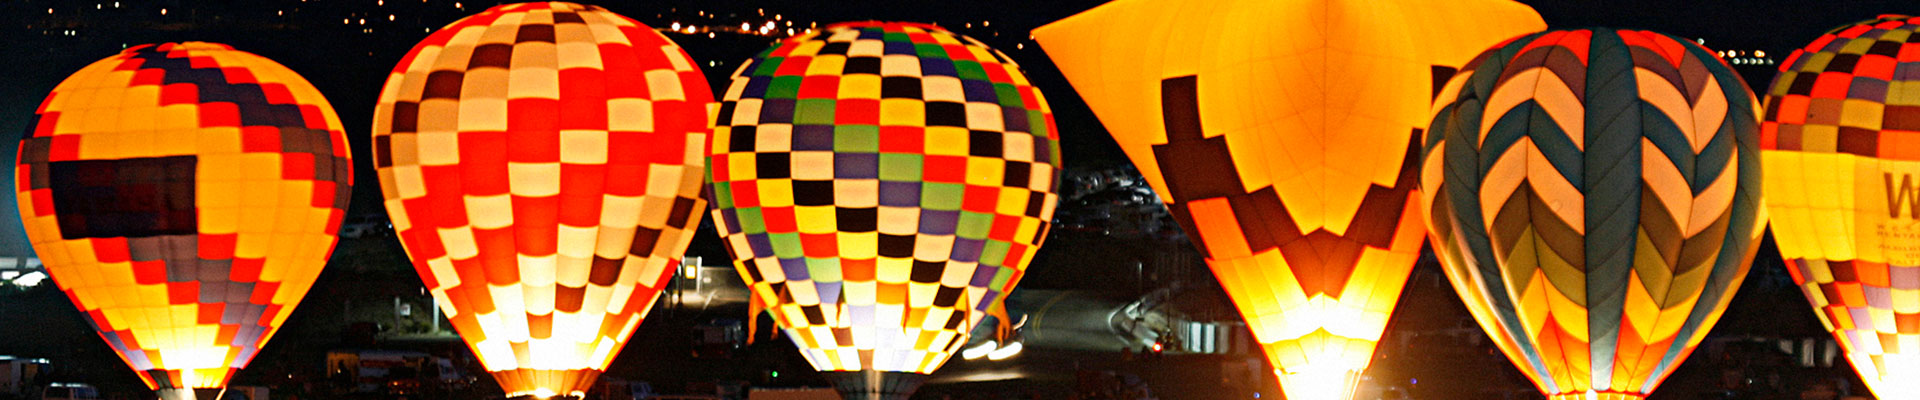 Fantasy RV Tours: 5 Day Balloon Fiesta (05UBFG-100721)